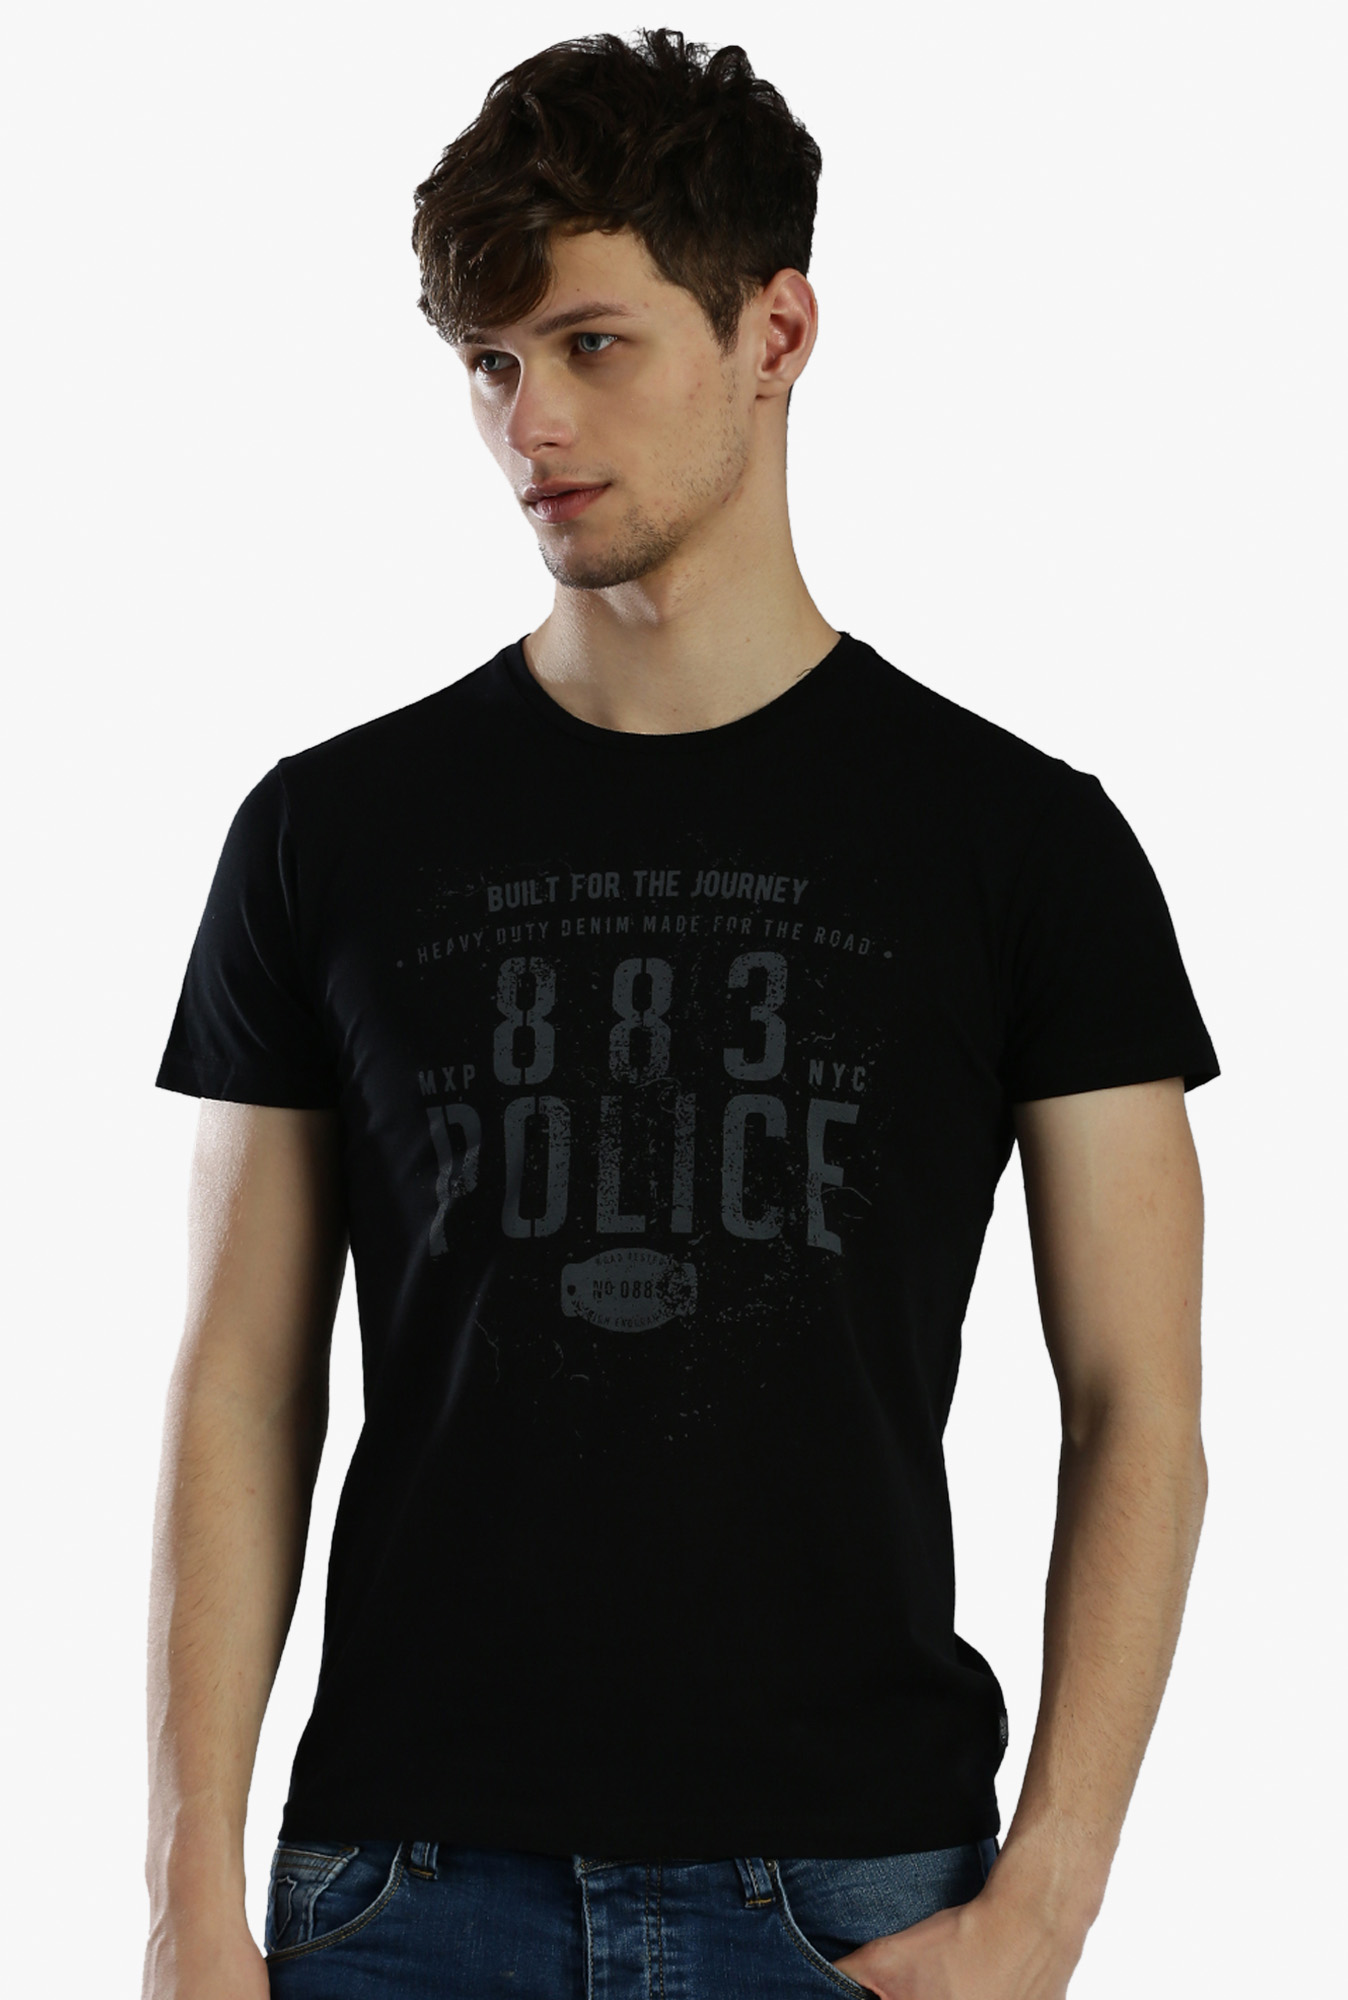 60fd8384353e8e Buy 883 Police Black Half Sleeves Cotton Printed T-Shirt for Men ...